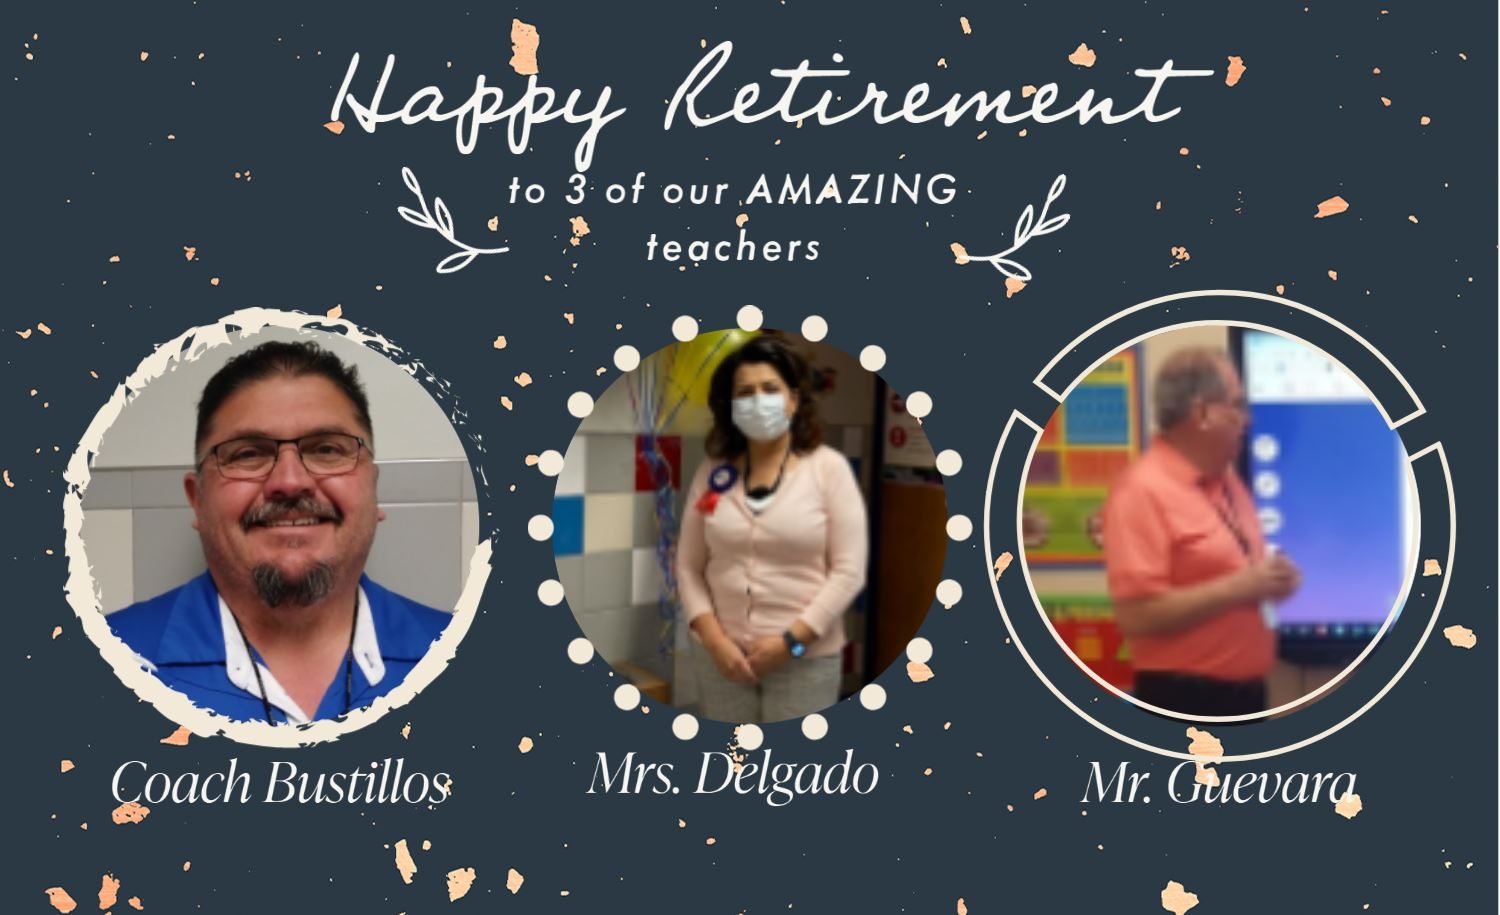 Happy Retirement to 3 of our AMAZING Teachers!